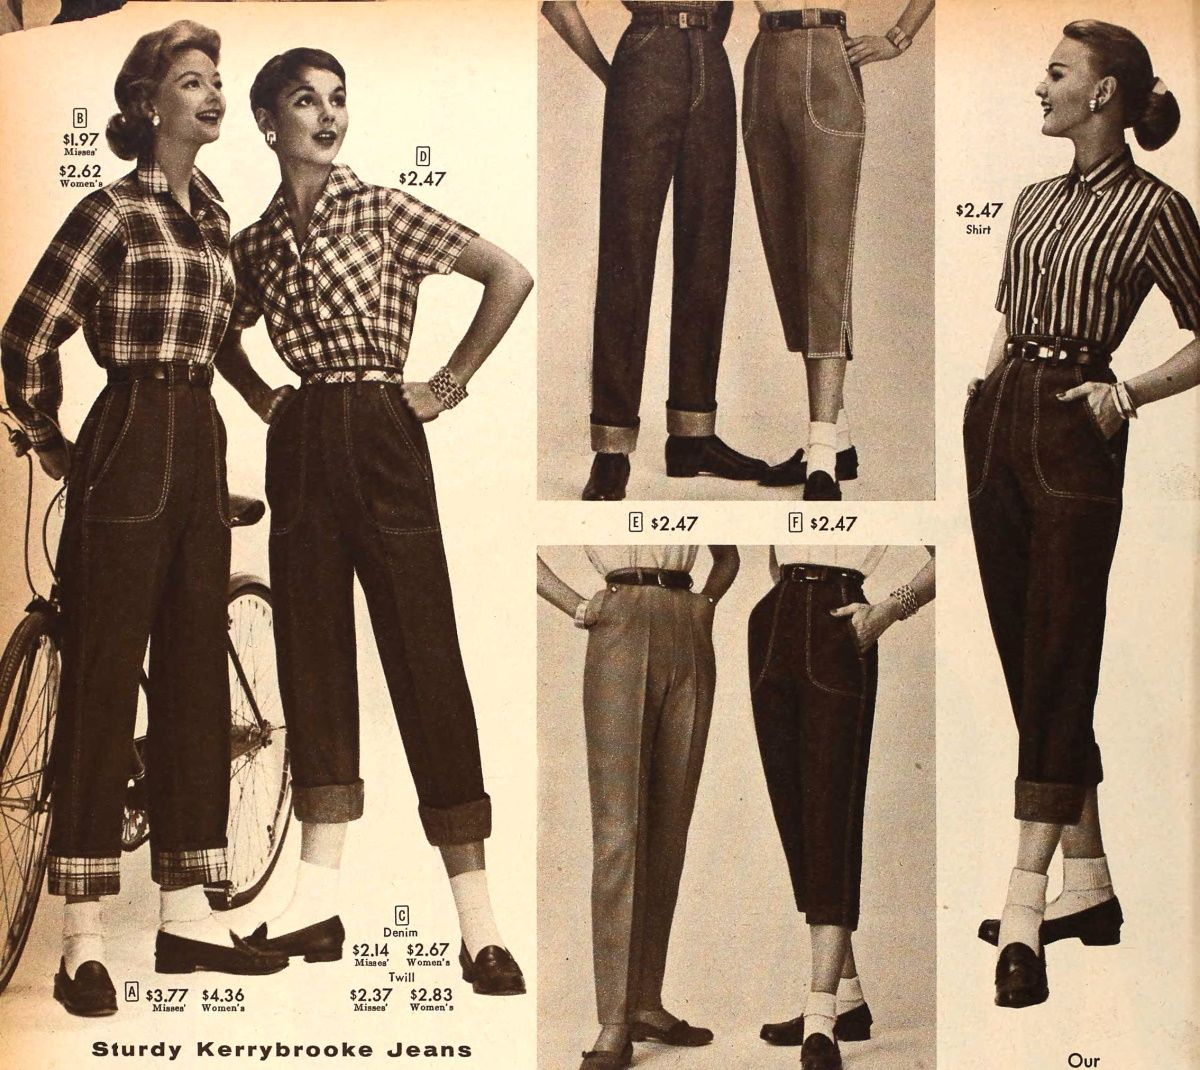 jeans from 1957 50s style jeans gr pinterest style vintage pantalons et tenues rockabilly. Black Bedroom Furniture Sets. Home Design Ideas